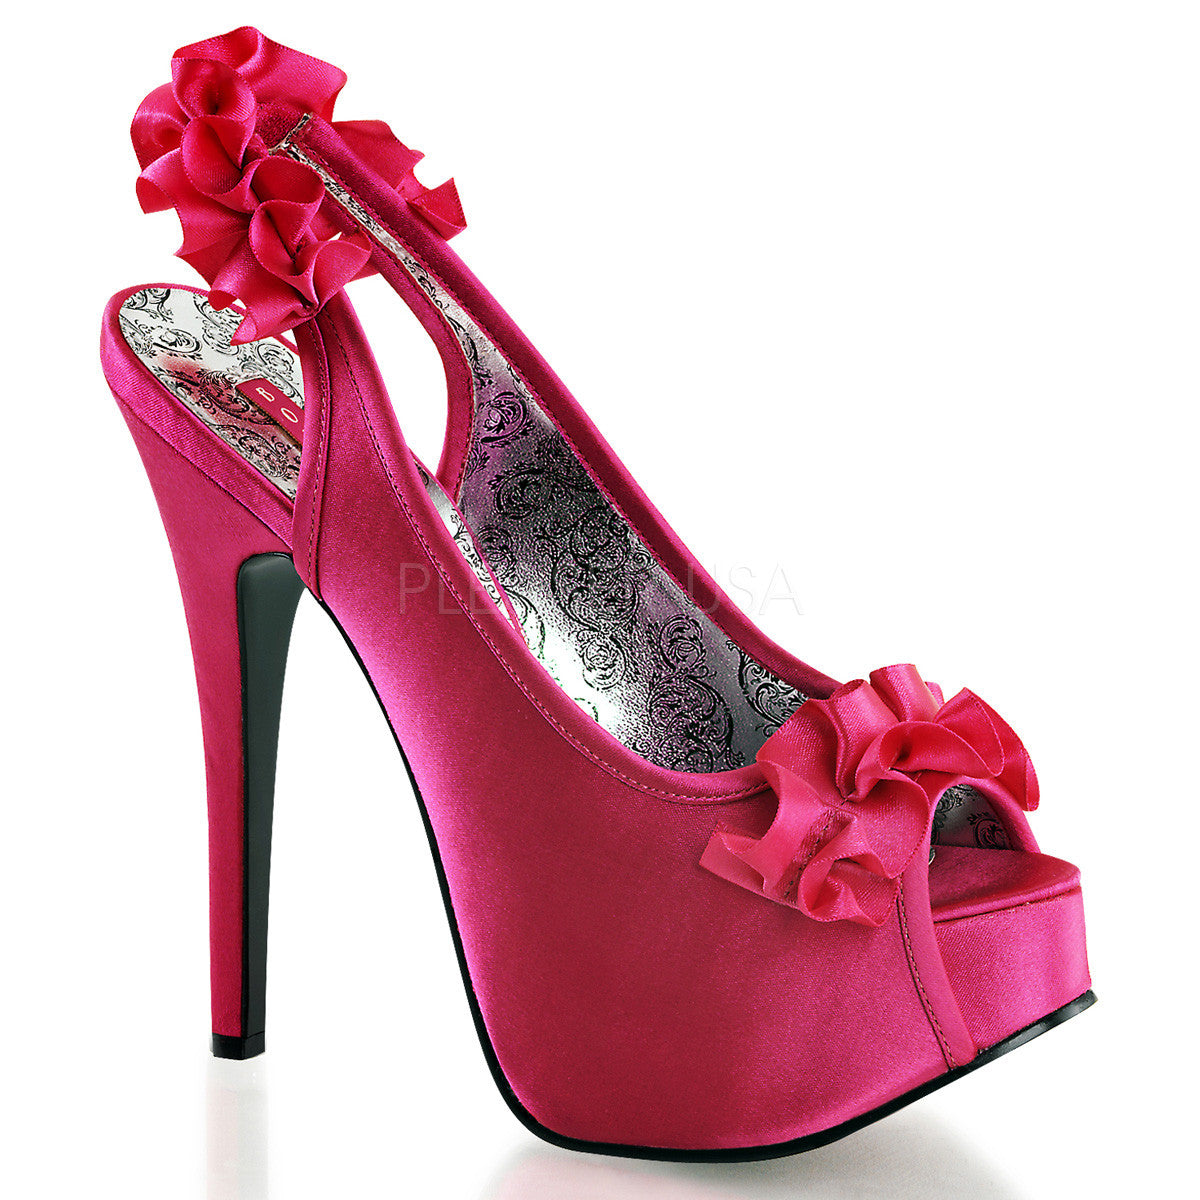 Bordello,Bordello TEEZE-56 Fuchsia Satin Sandals - Shoecup.com